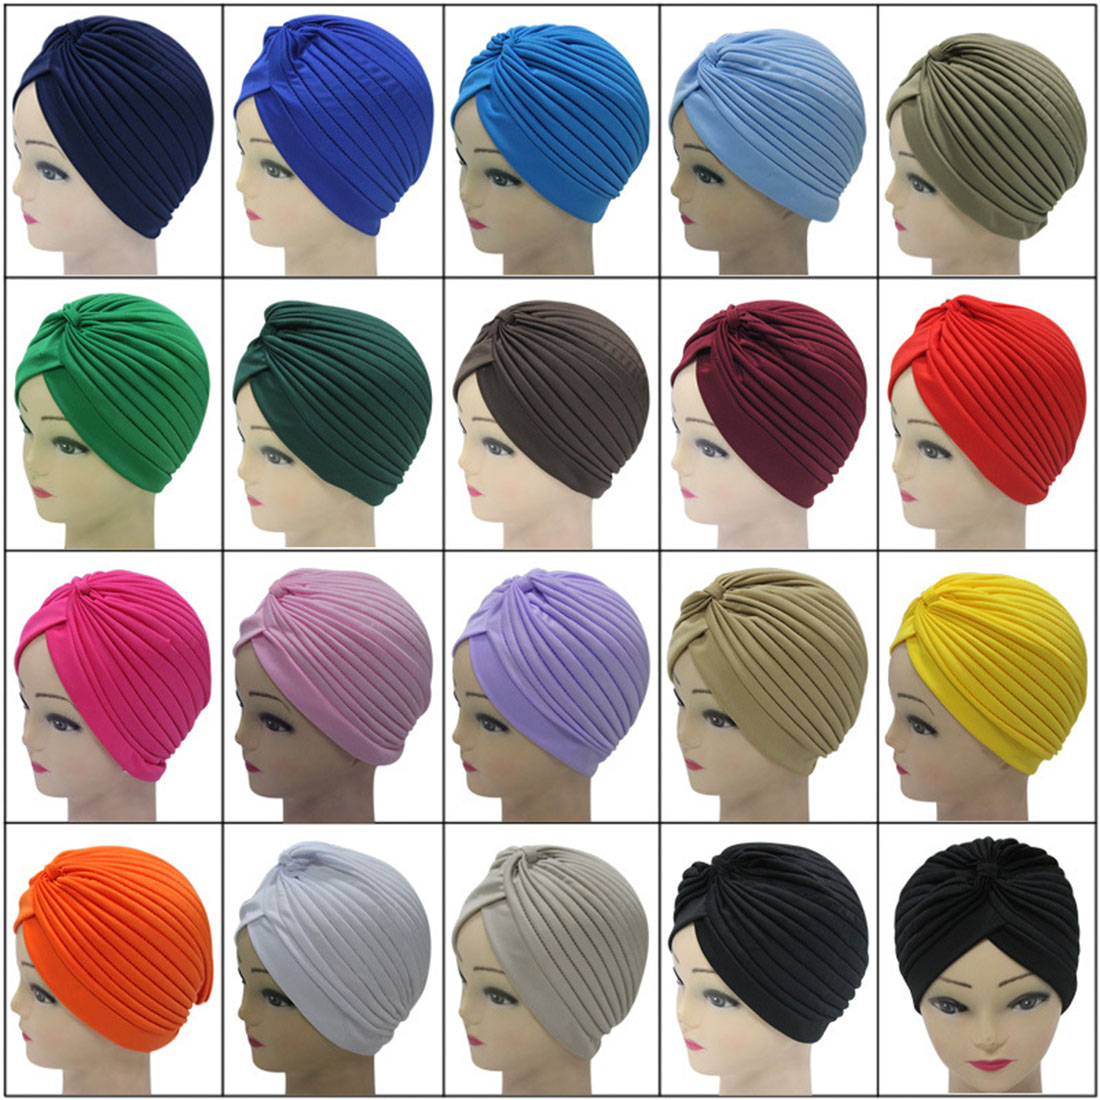 Women Men Stretchy Turban Head Wrap Band Chemo Bandana Pleated Indian Cap   Skullies     Beanies   Prayer New Hats Ethnic 23 Color